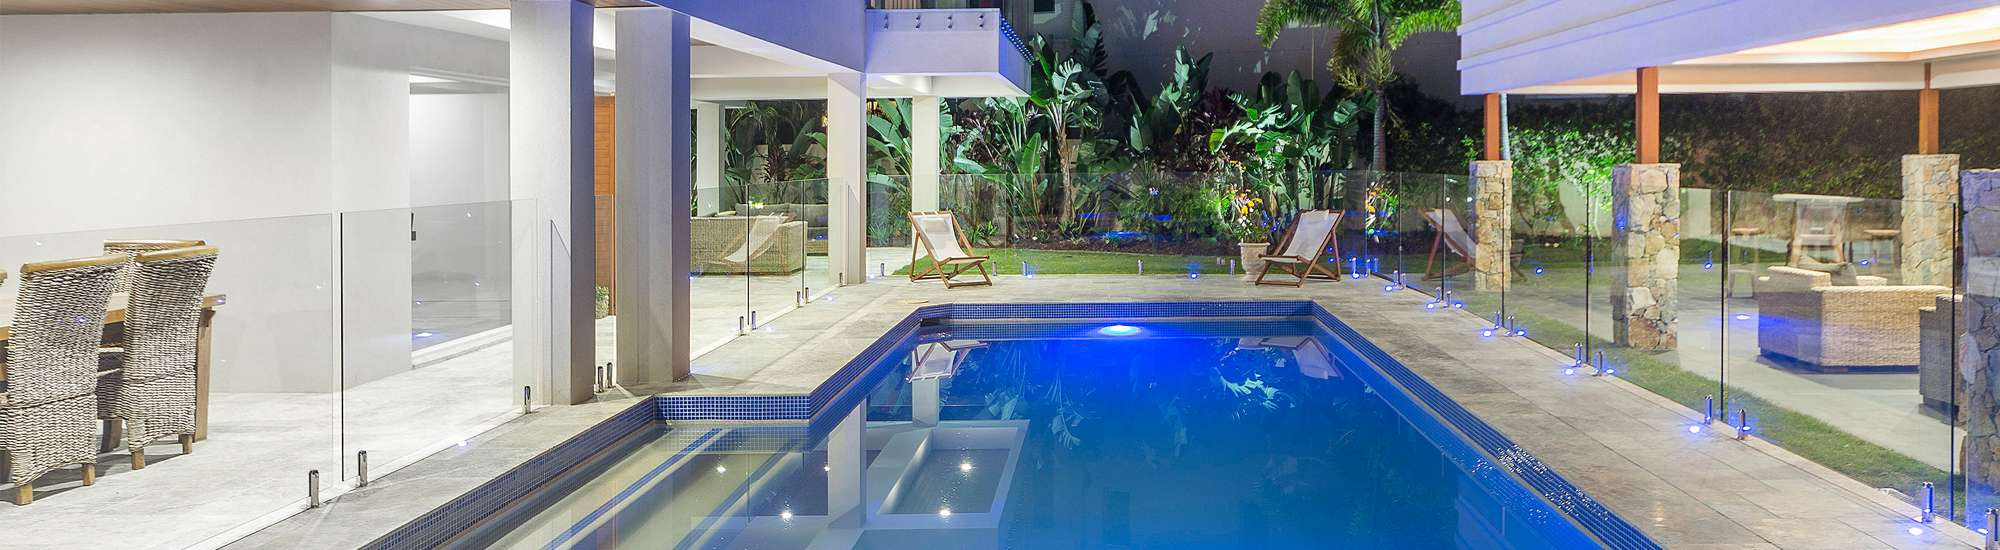 Pool & Outdoor Lighting